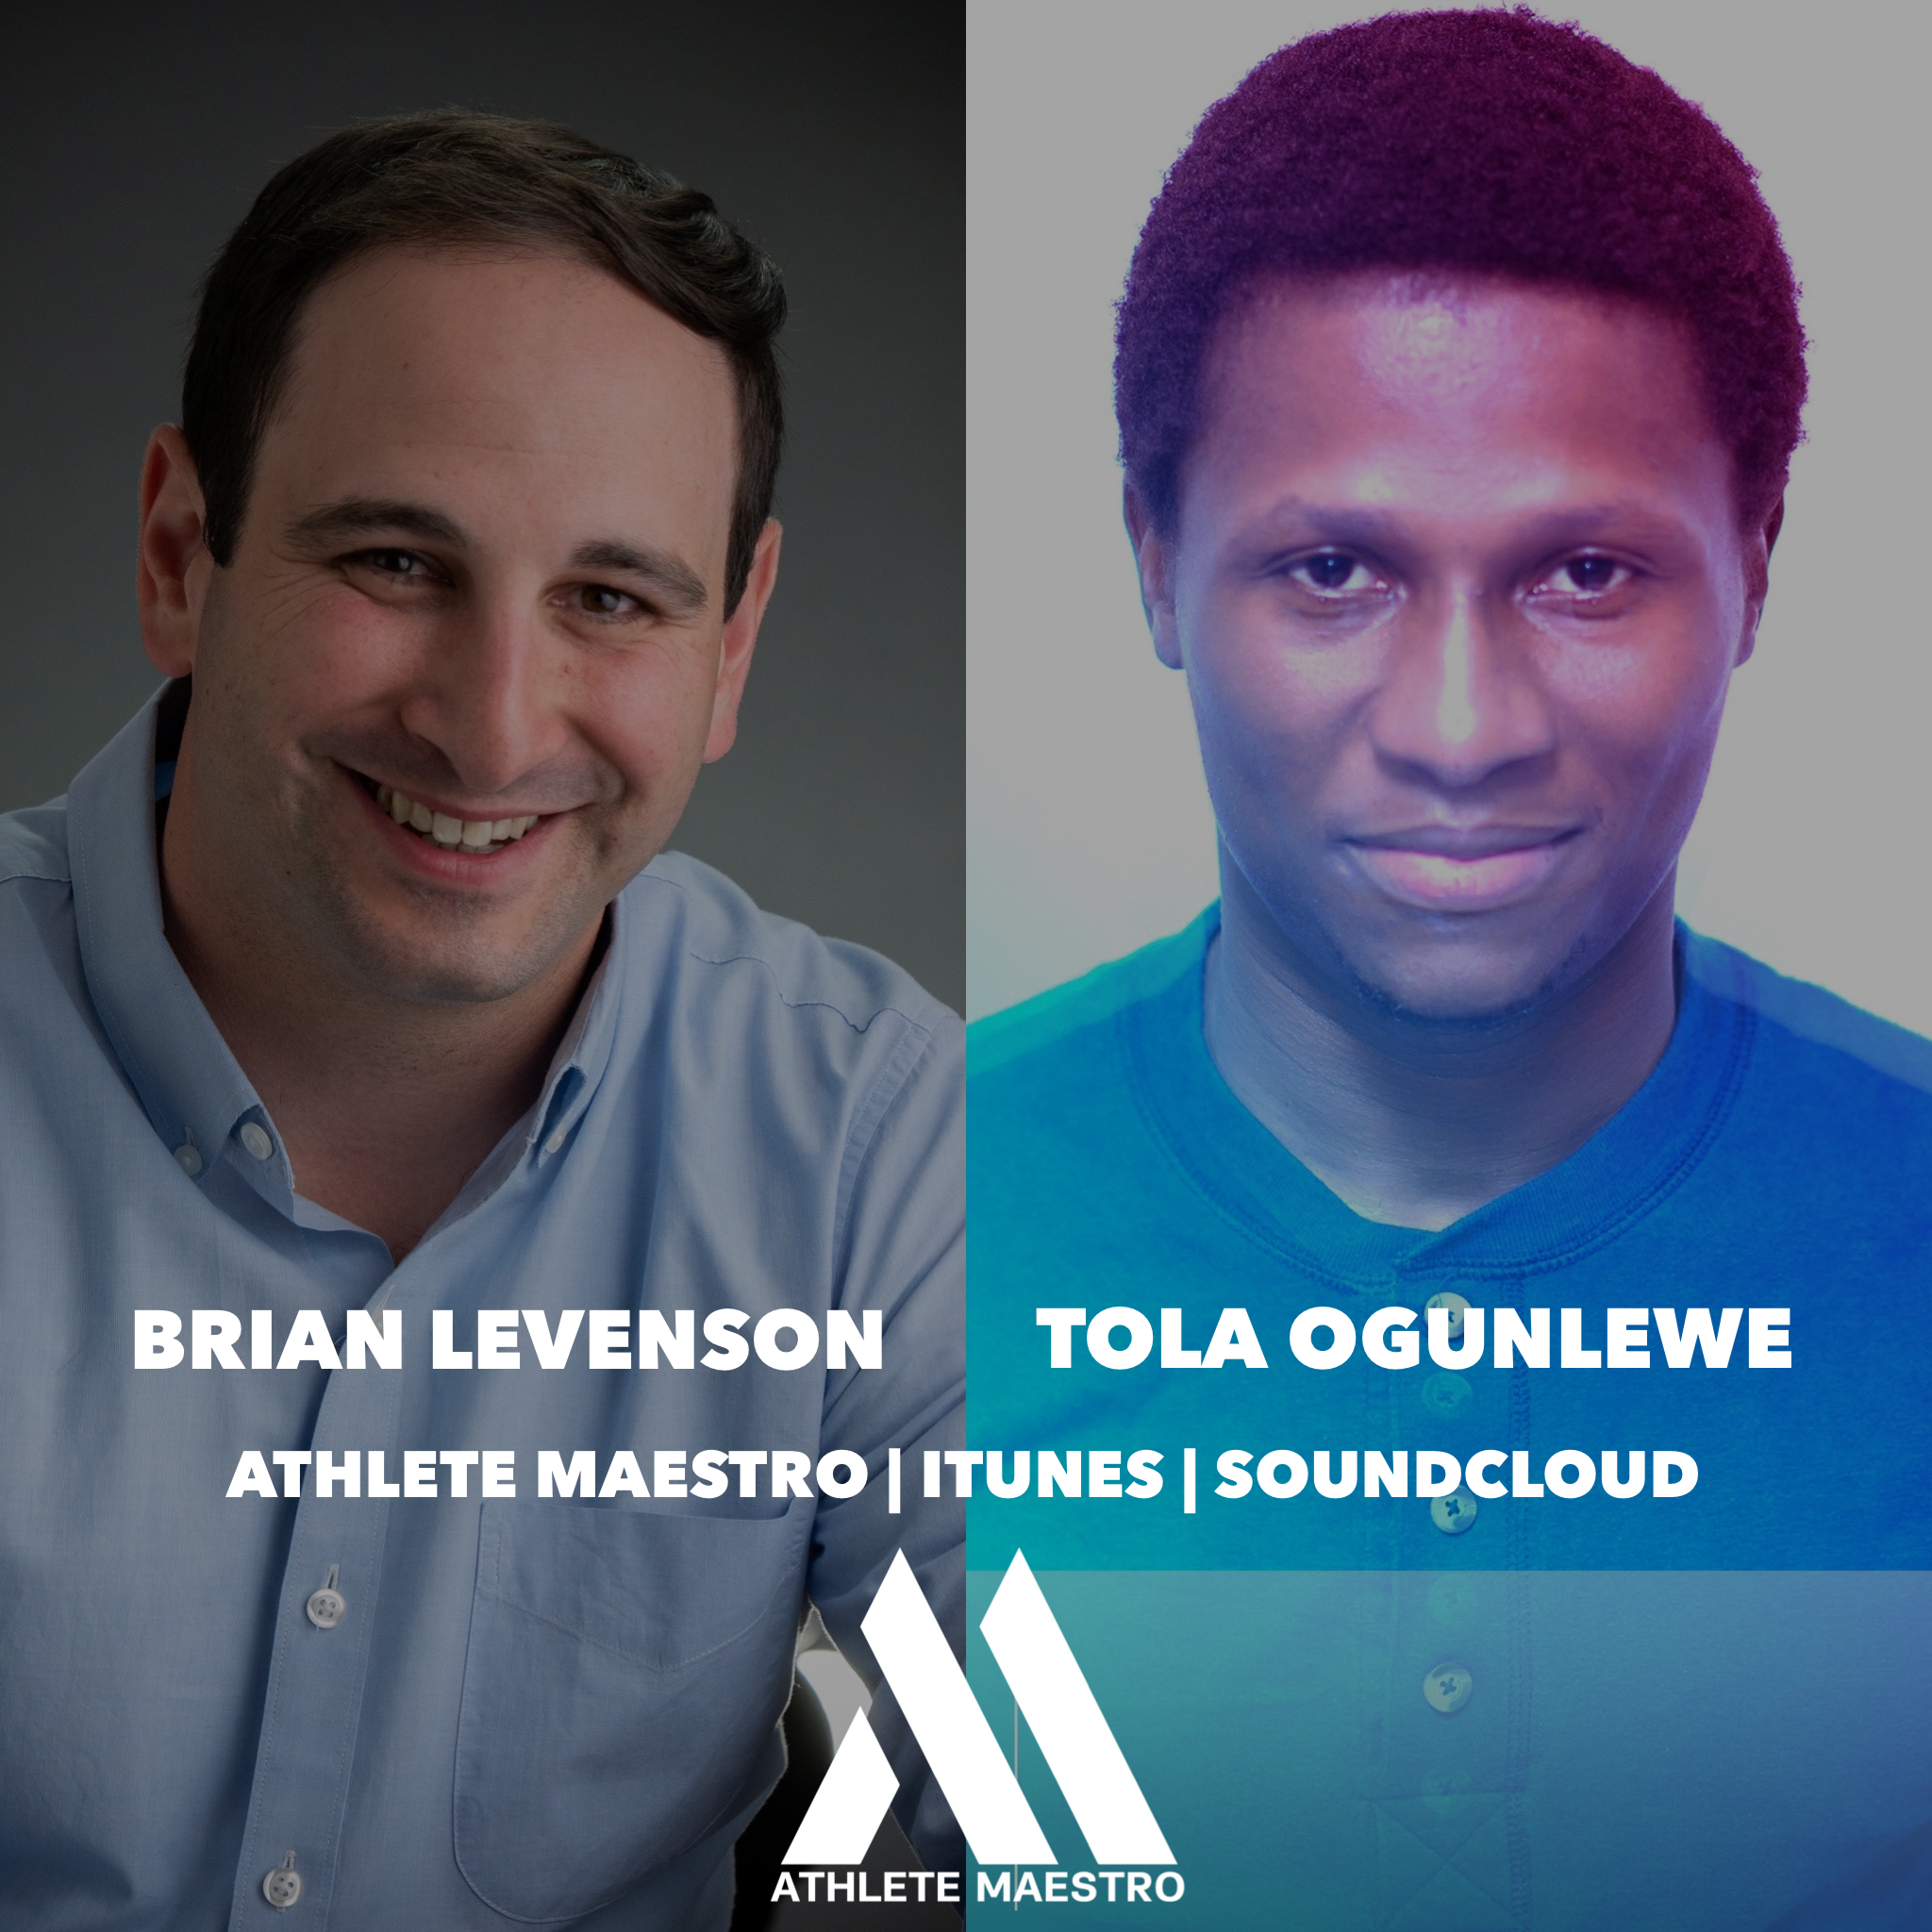 Developing An Elite Athlete's Mindset With Mental Performance Coach Brian Levenson